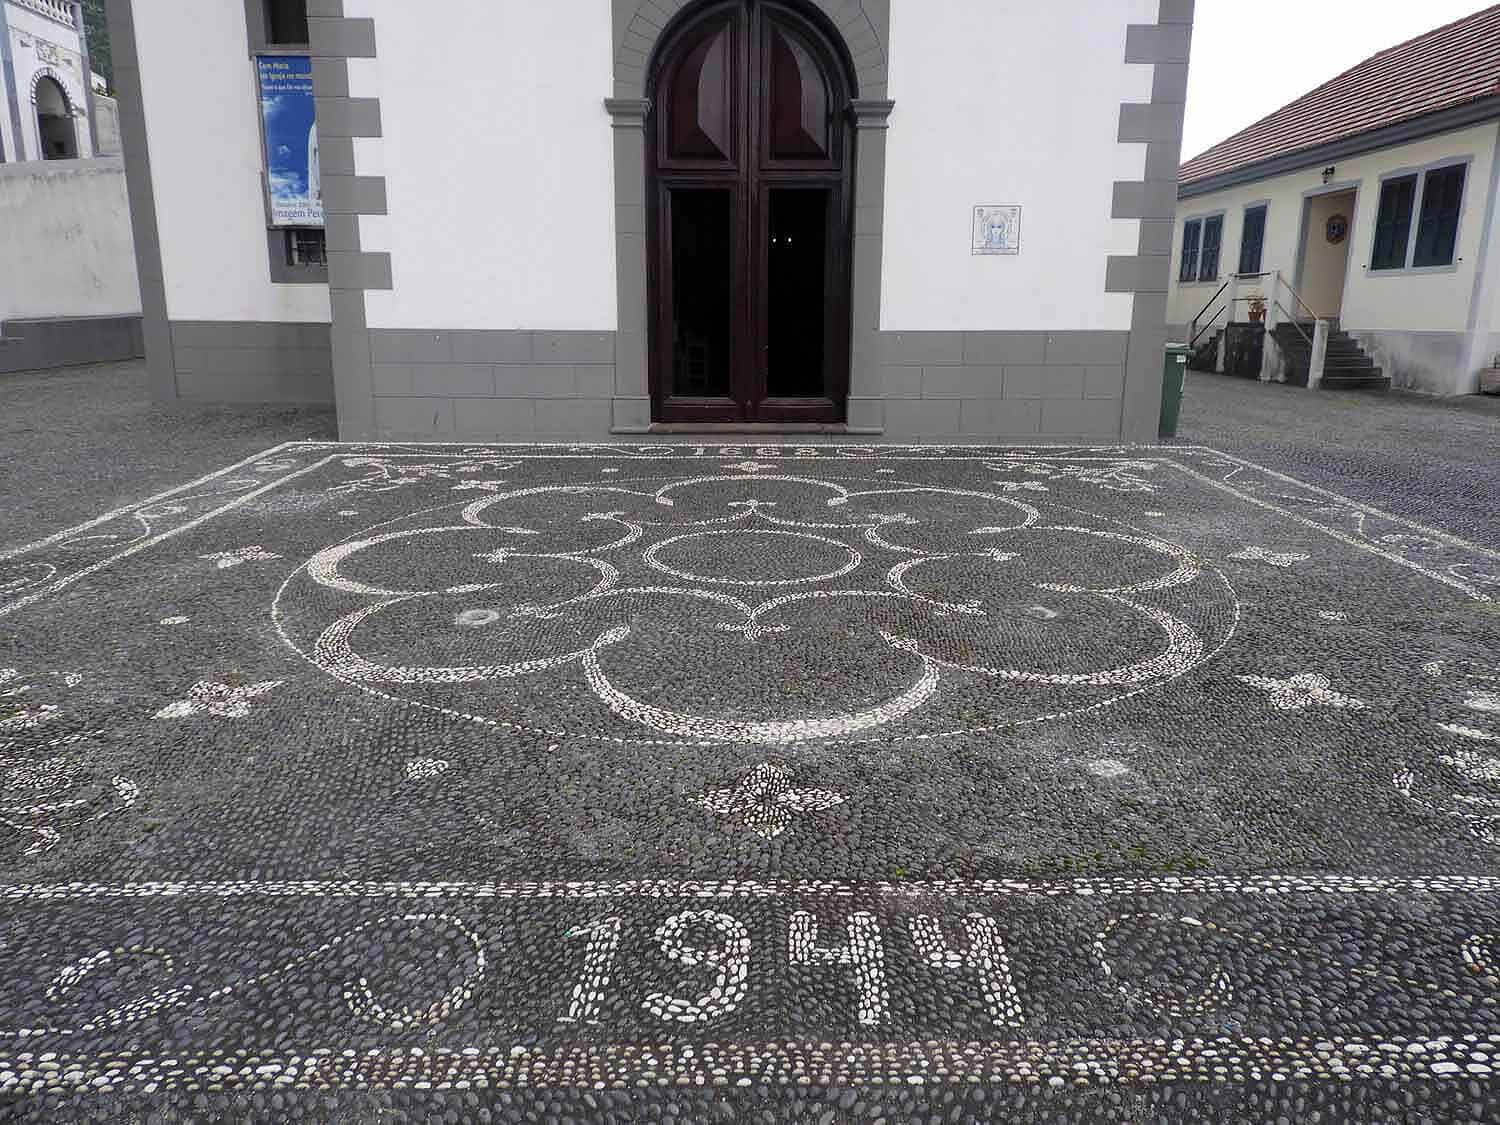 portugal-madeira-island-porto-muniz-church-cobblestone-unique.jpg